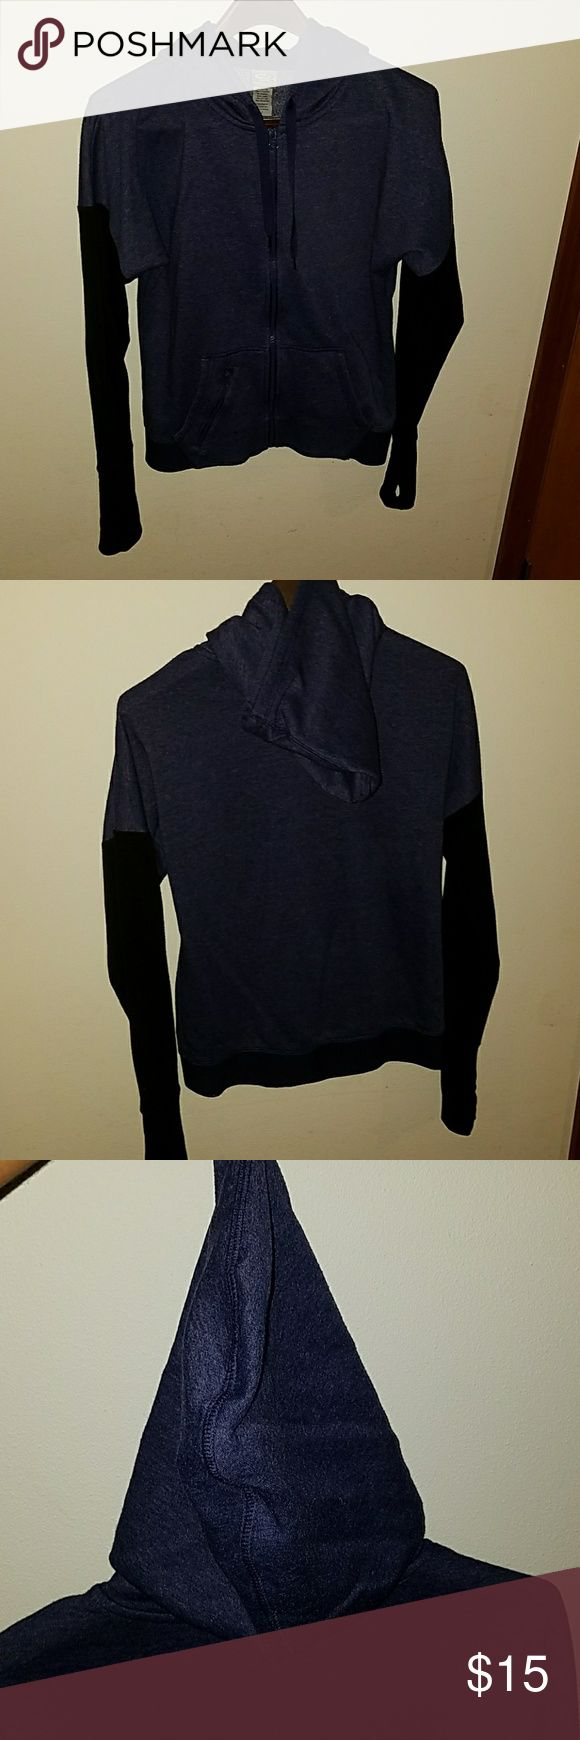 "Champion Size S Women's Zip Up Sweatshirt Champion Size S Women's Zip Up Sweatshirt.  This sweatshirt is two timed where the core of the sweatshirt is a dark purple and the sleeves and bottom hem are black. Each sleeve has a thumb hole and a stretchy ""cuff"" that goes about mid forearm. Very warm sweatshirt. Only worn a few times and is in great condition. Champion Tops Sweatshirts & Hoodies"